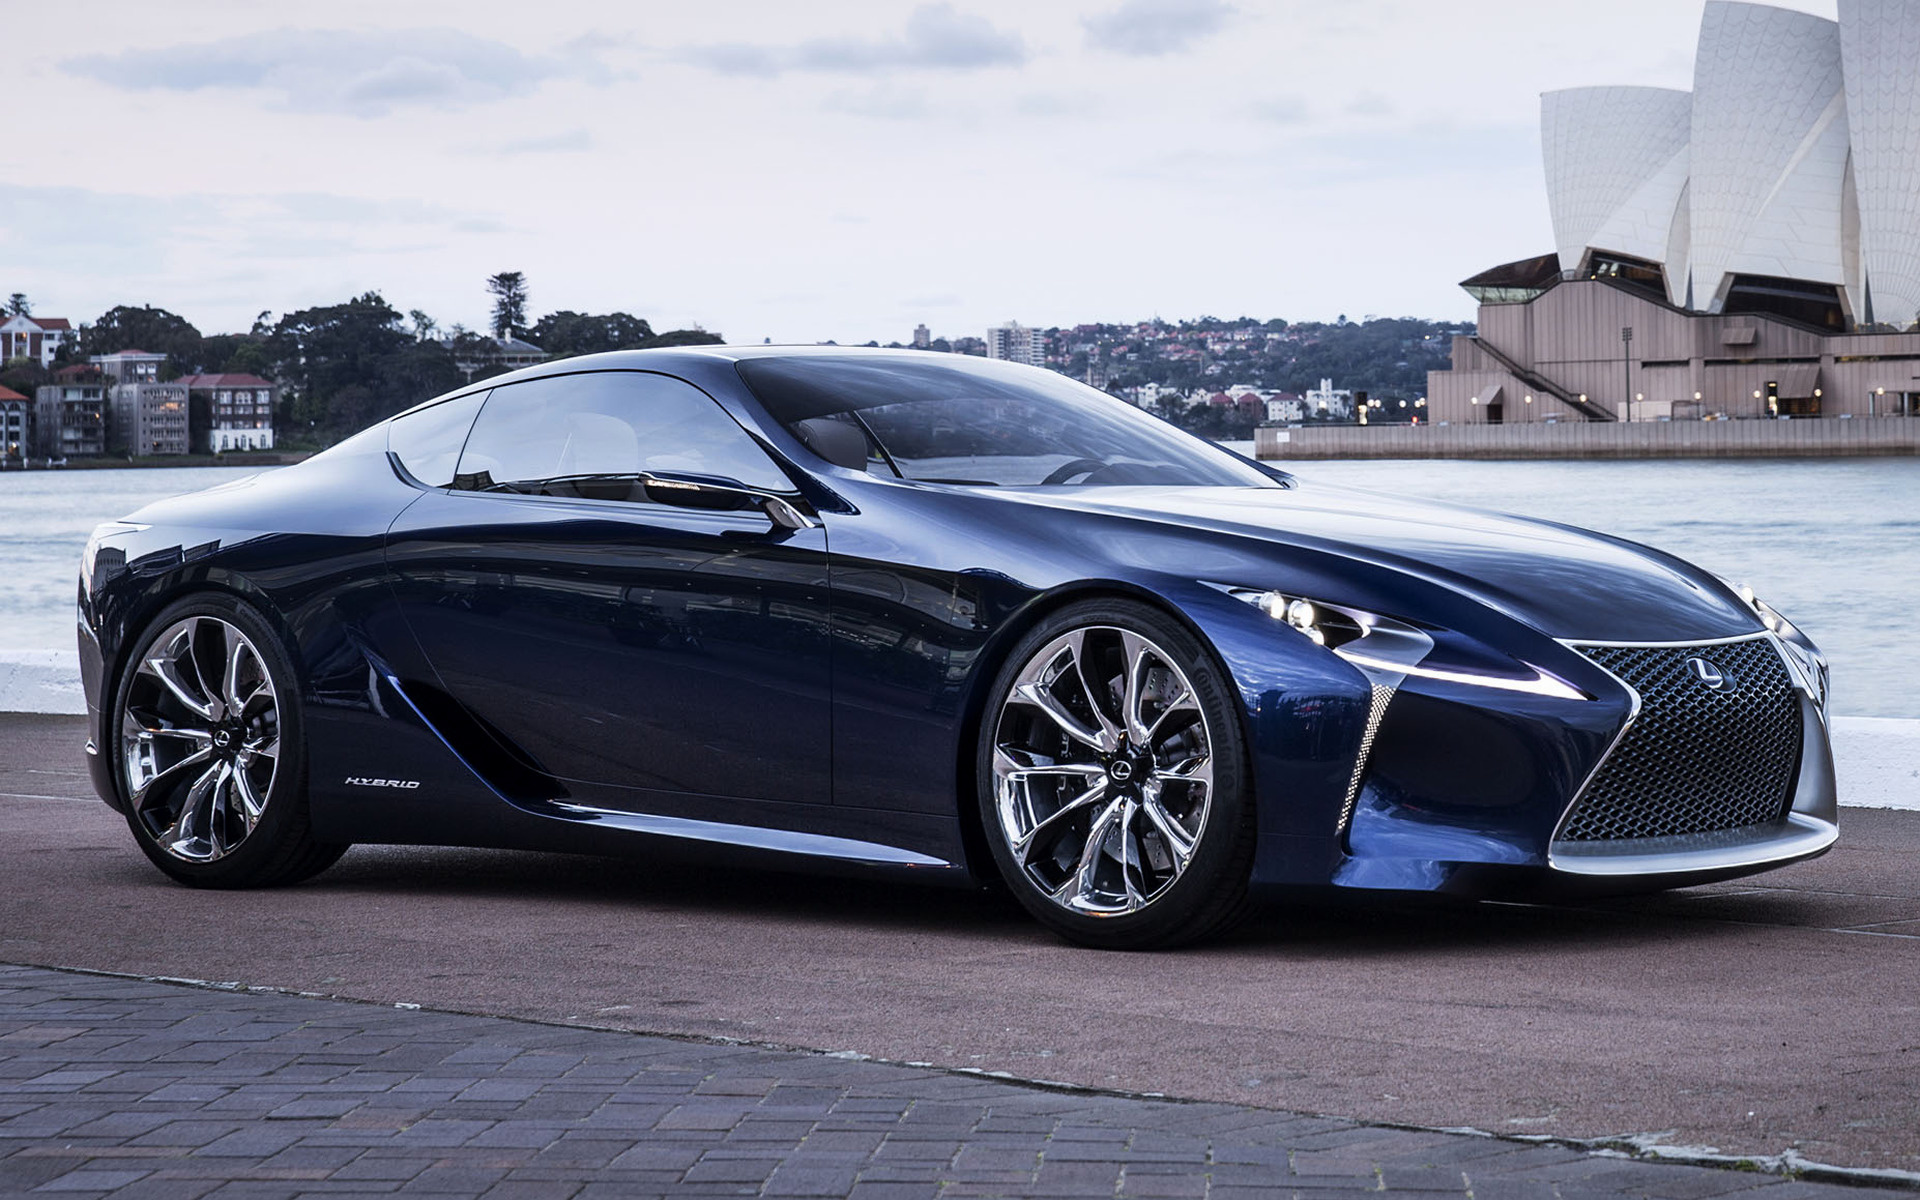 Lexus LF-LC Blue Concept (2012) Wallpapers and HD Images - Car Pixel